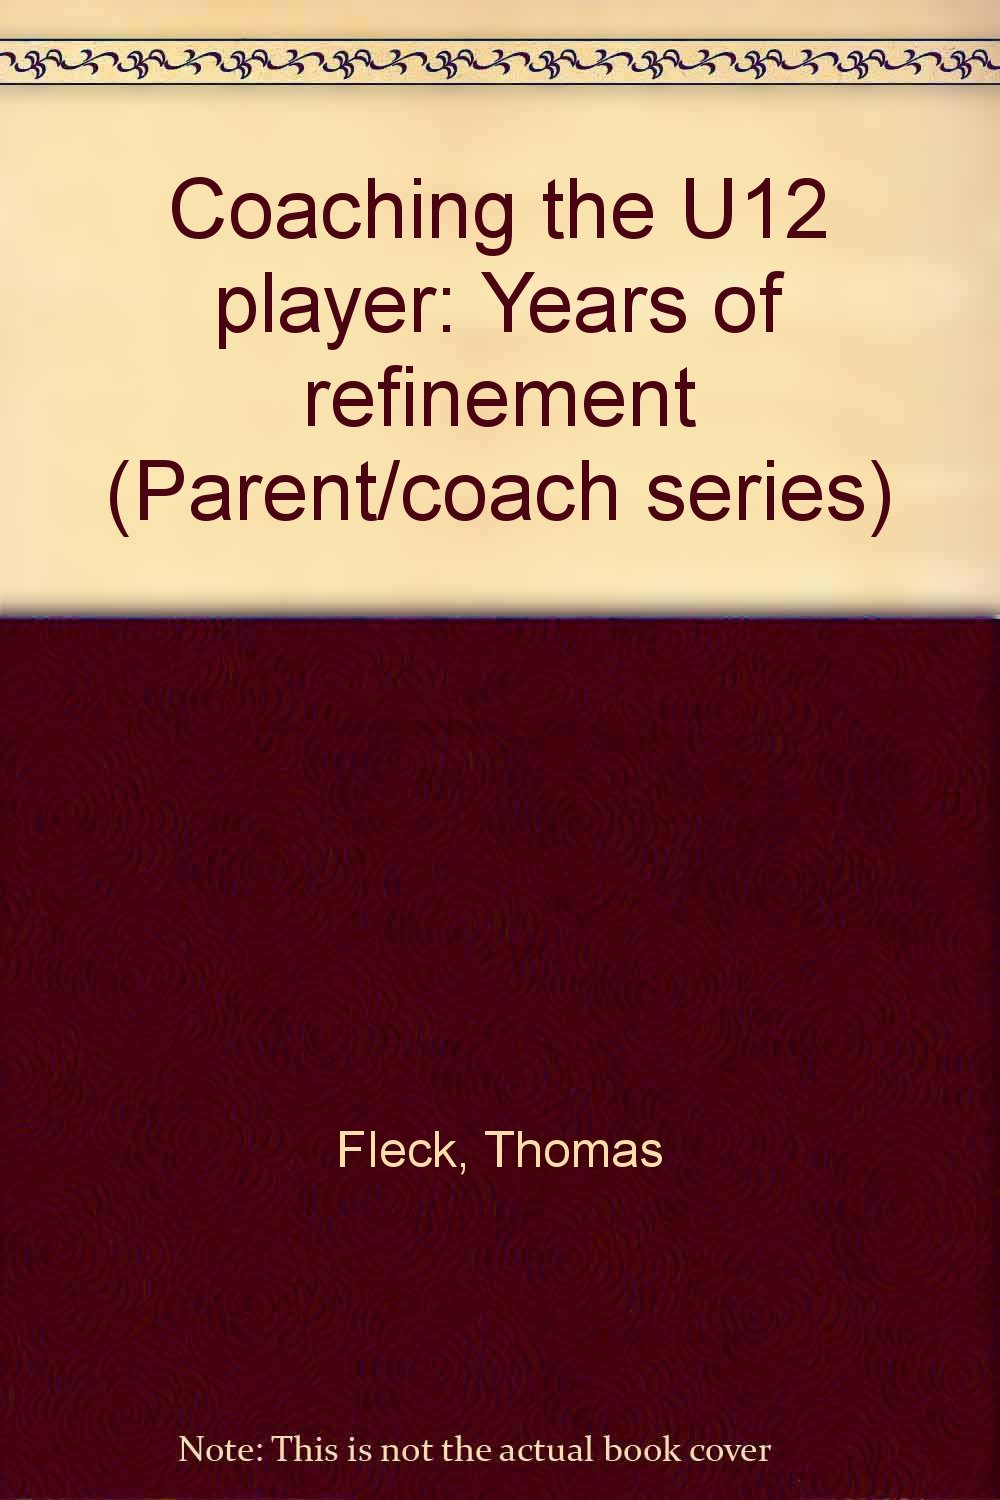 Coaching the U12 player: Years of refinement (Parent/coach series)